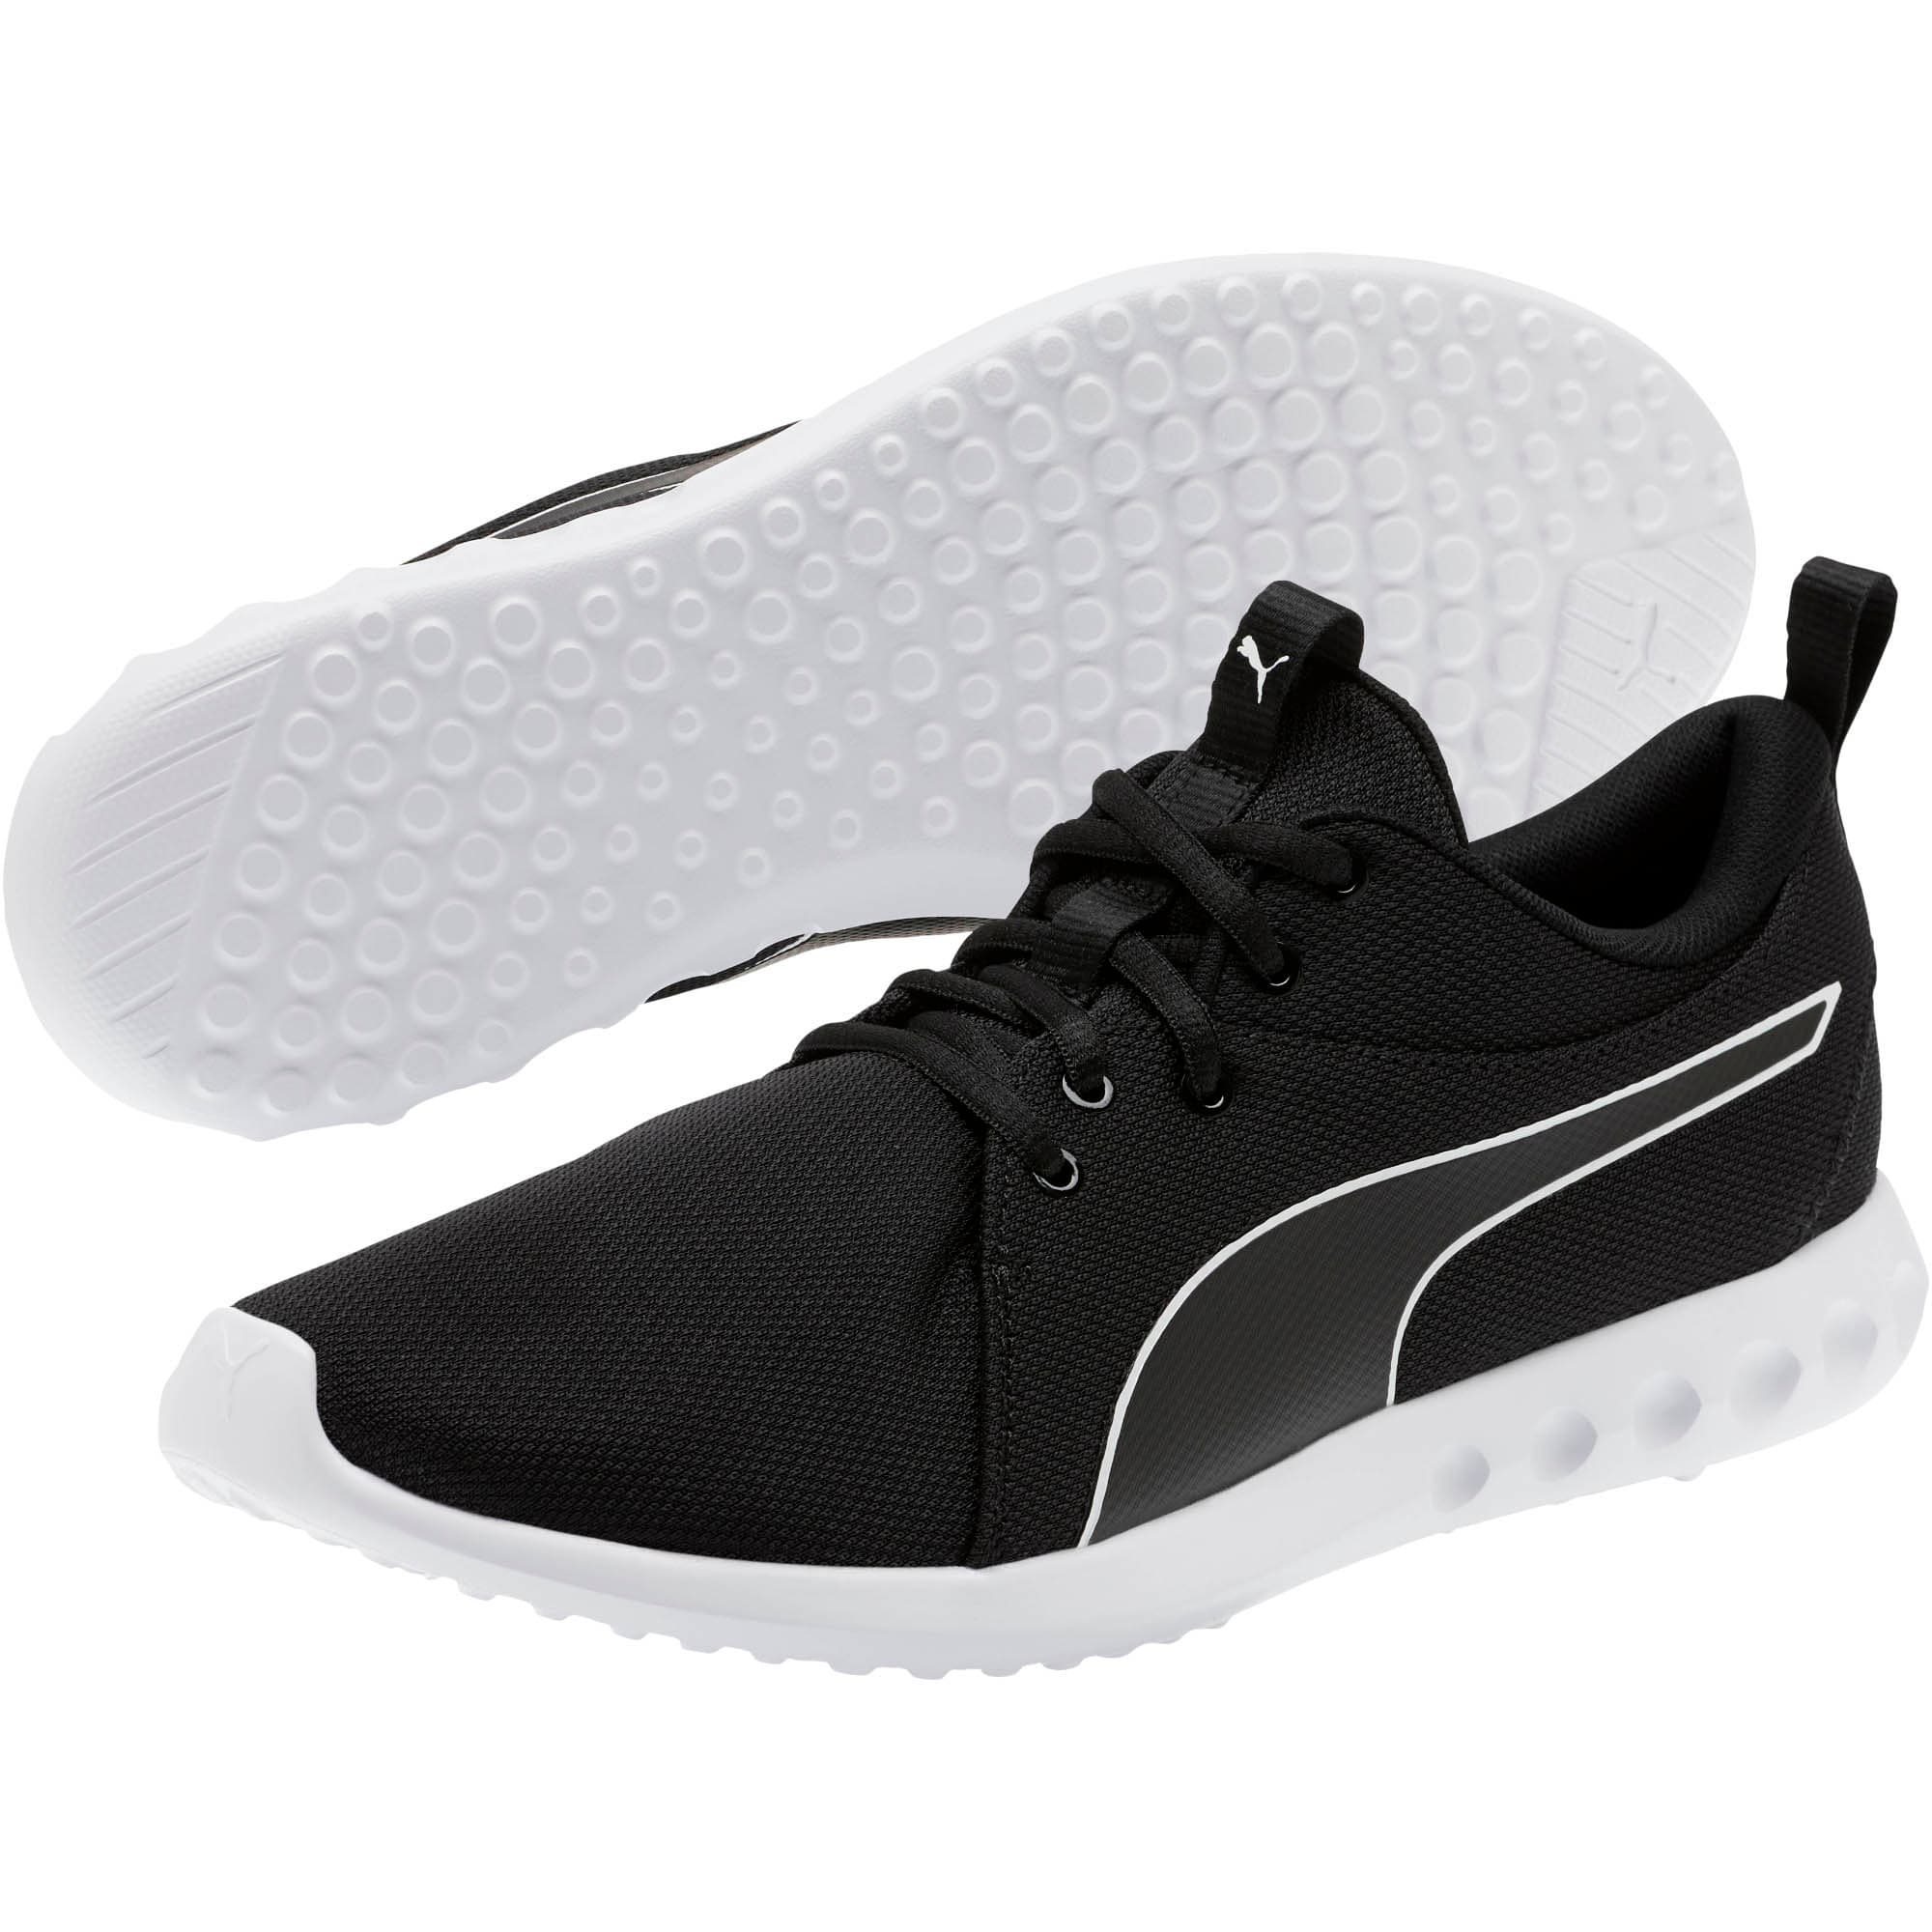 Thumbnail 2 of Carson 2 Cosmo Men's Running Shoes, Puma Black-Puma White, medium